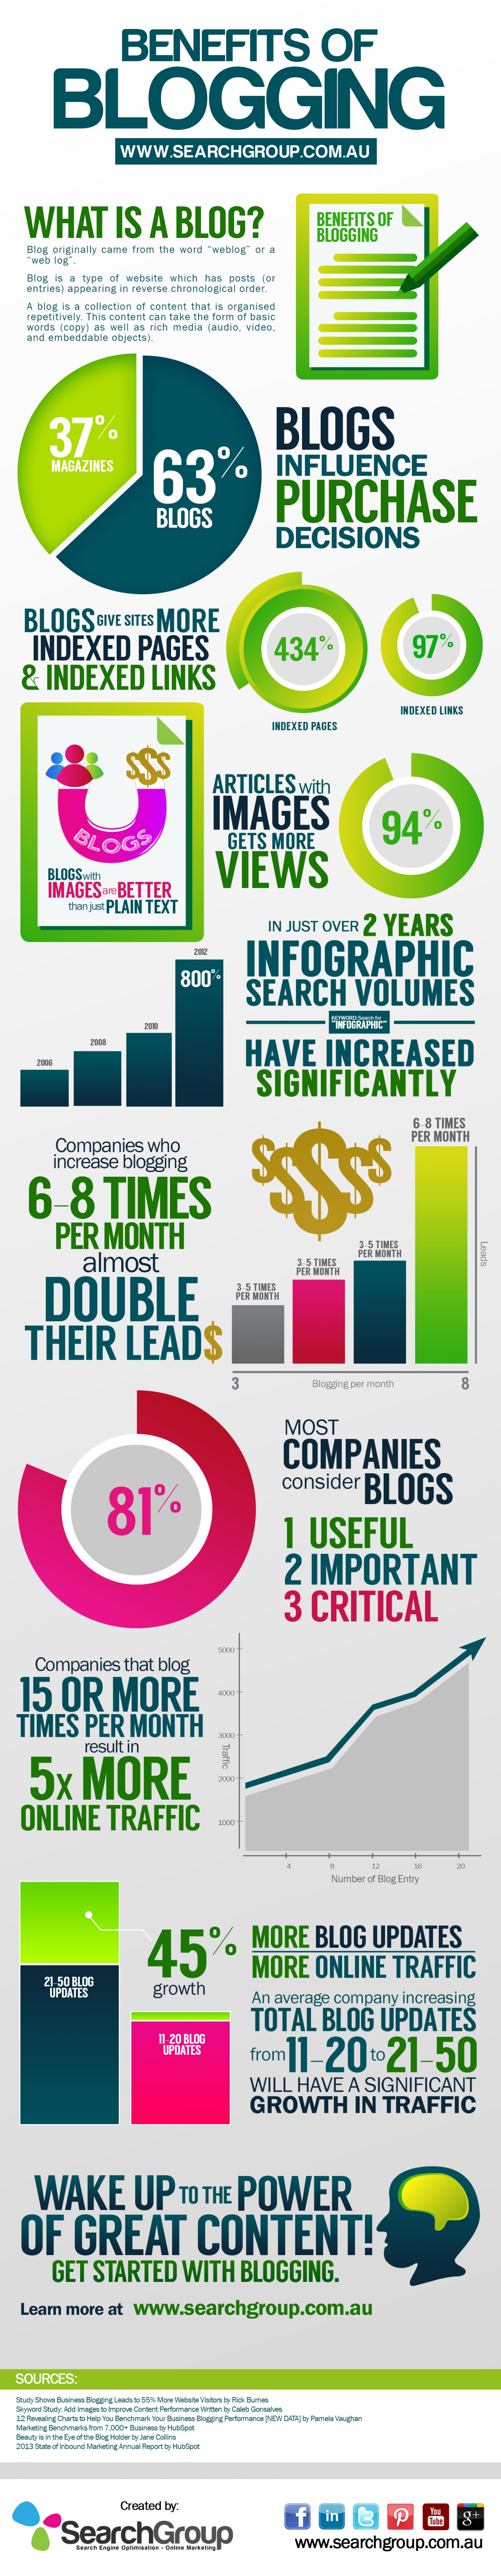 Benefits of Blogging Infographic